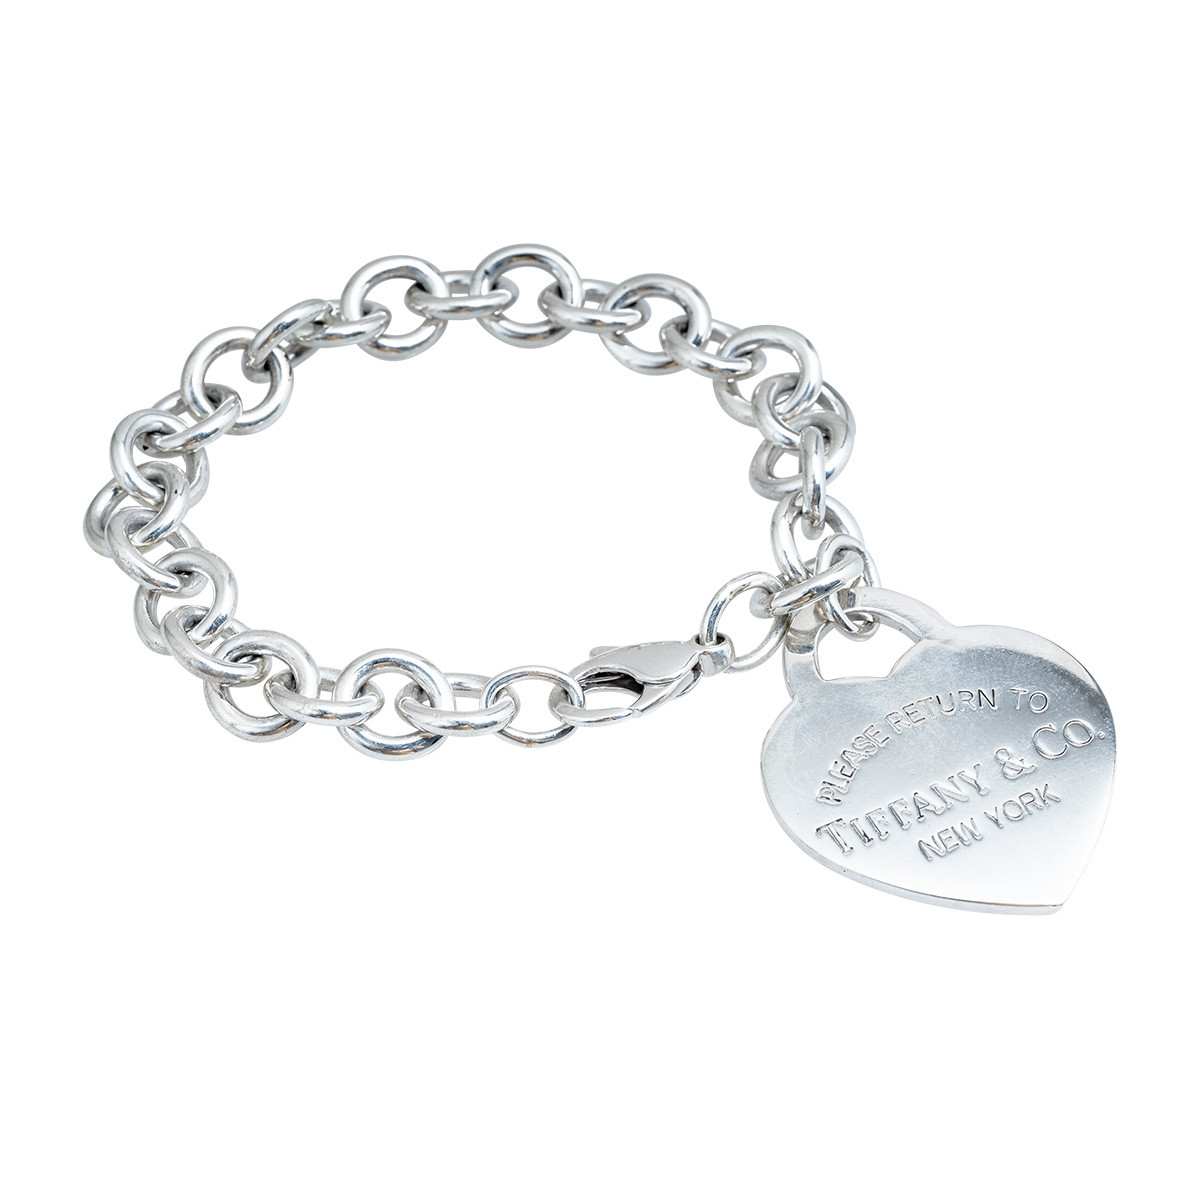 Vintage Tiffany & Co. Please Return to Tiffany Heart Tag Bracelet